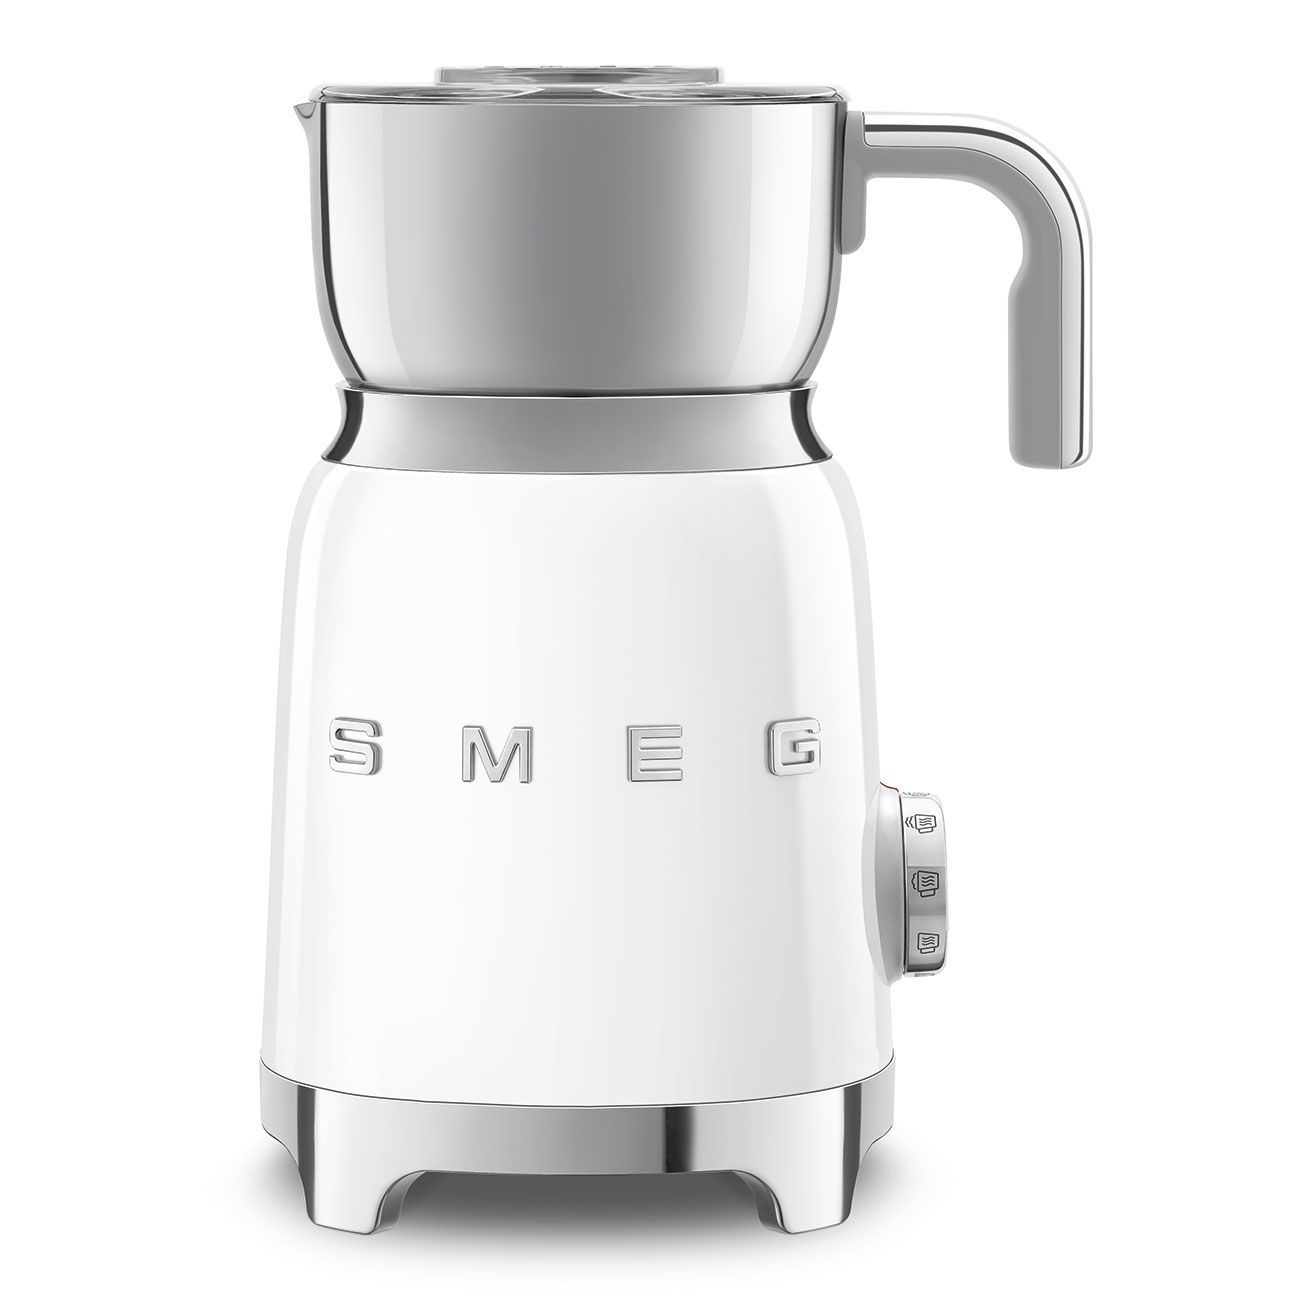 Best gifts, gift ideas for women - Smeg Milk Frother